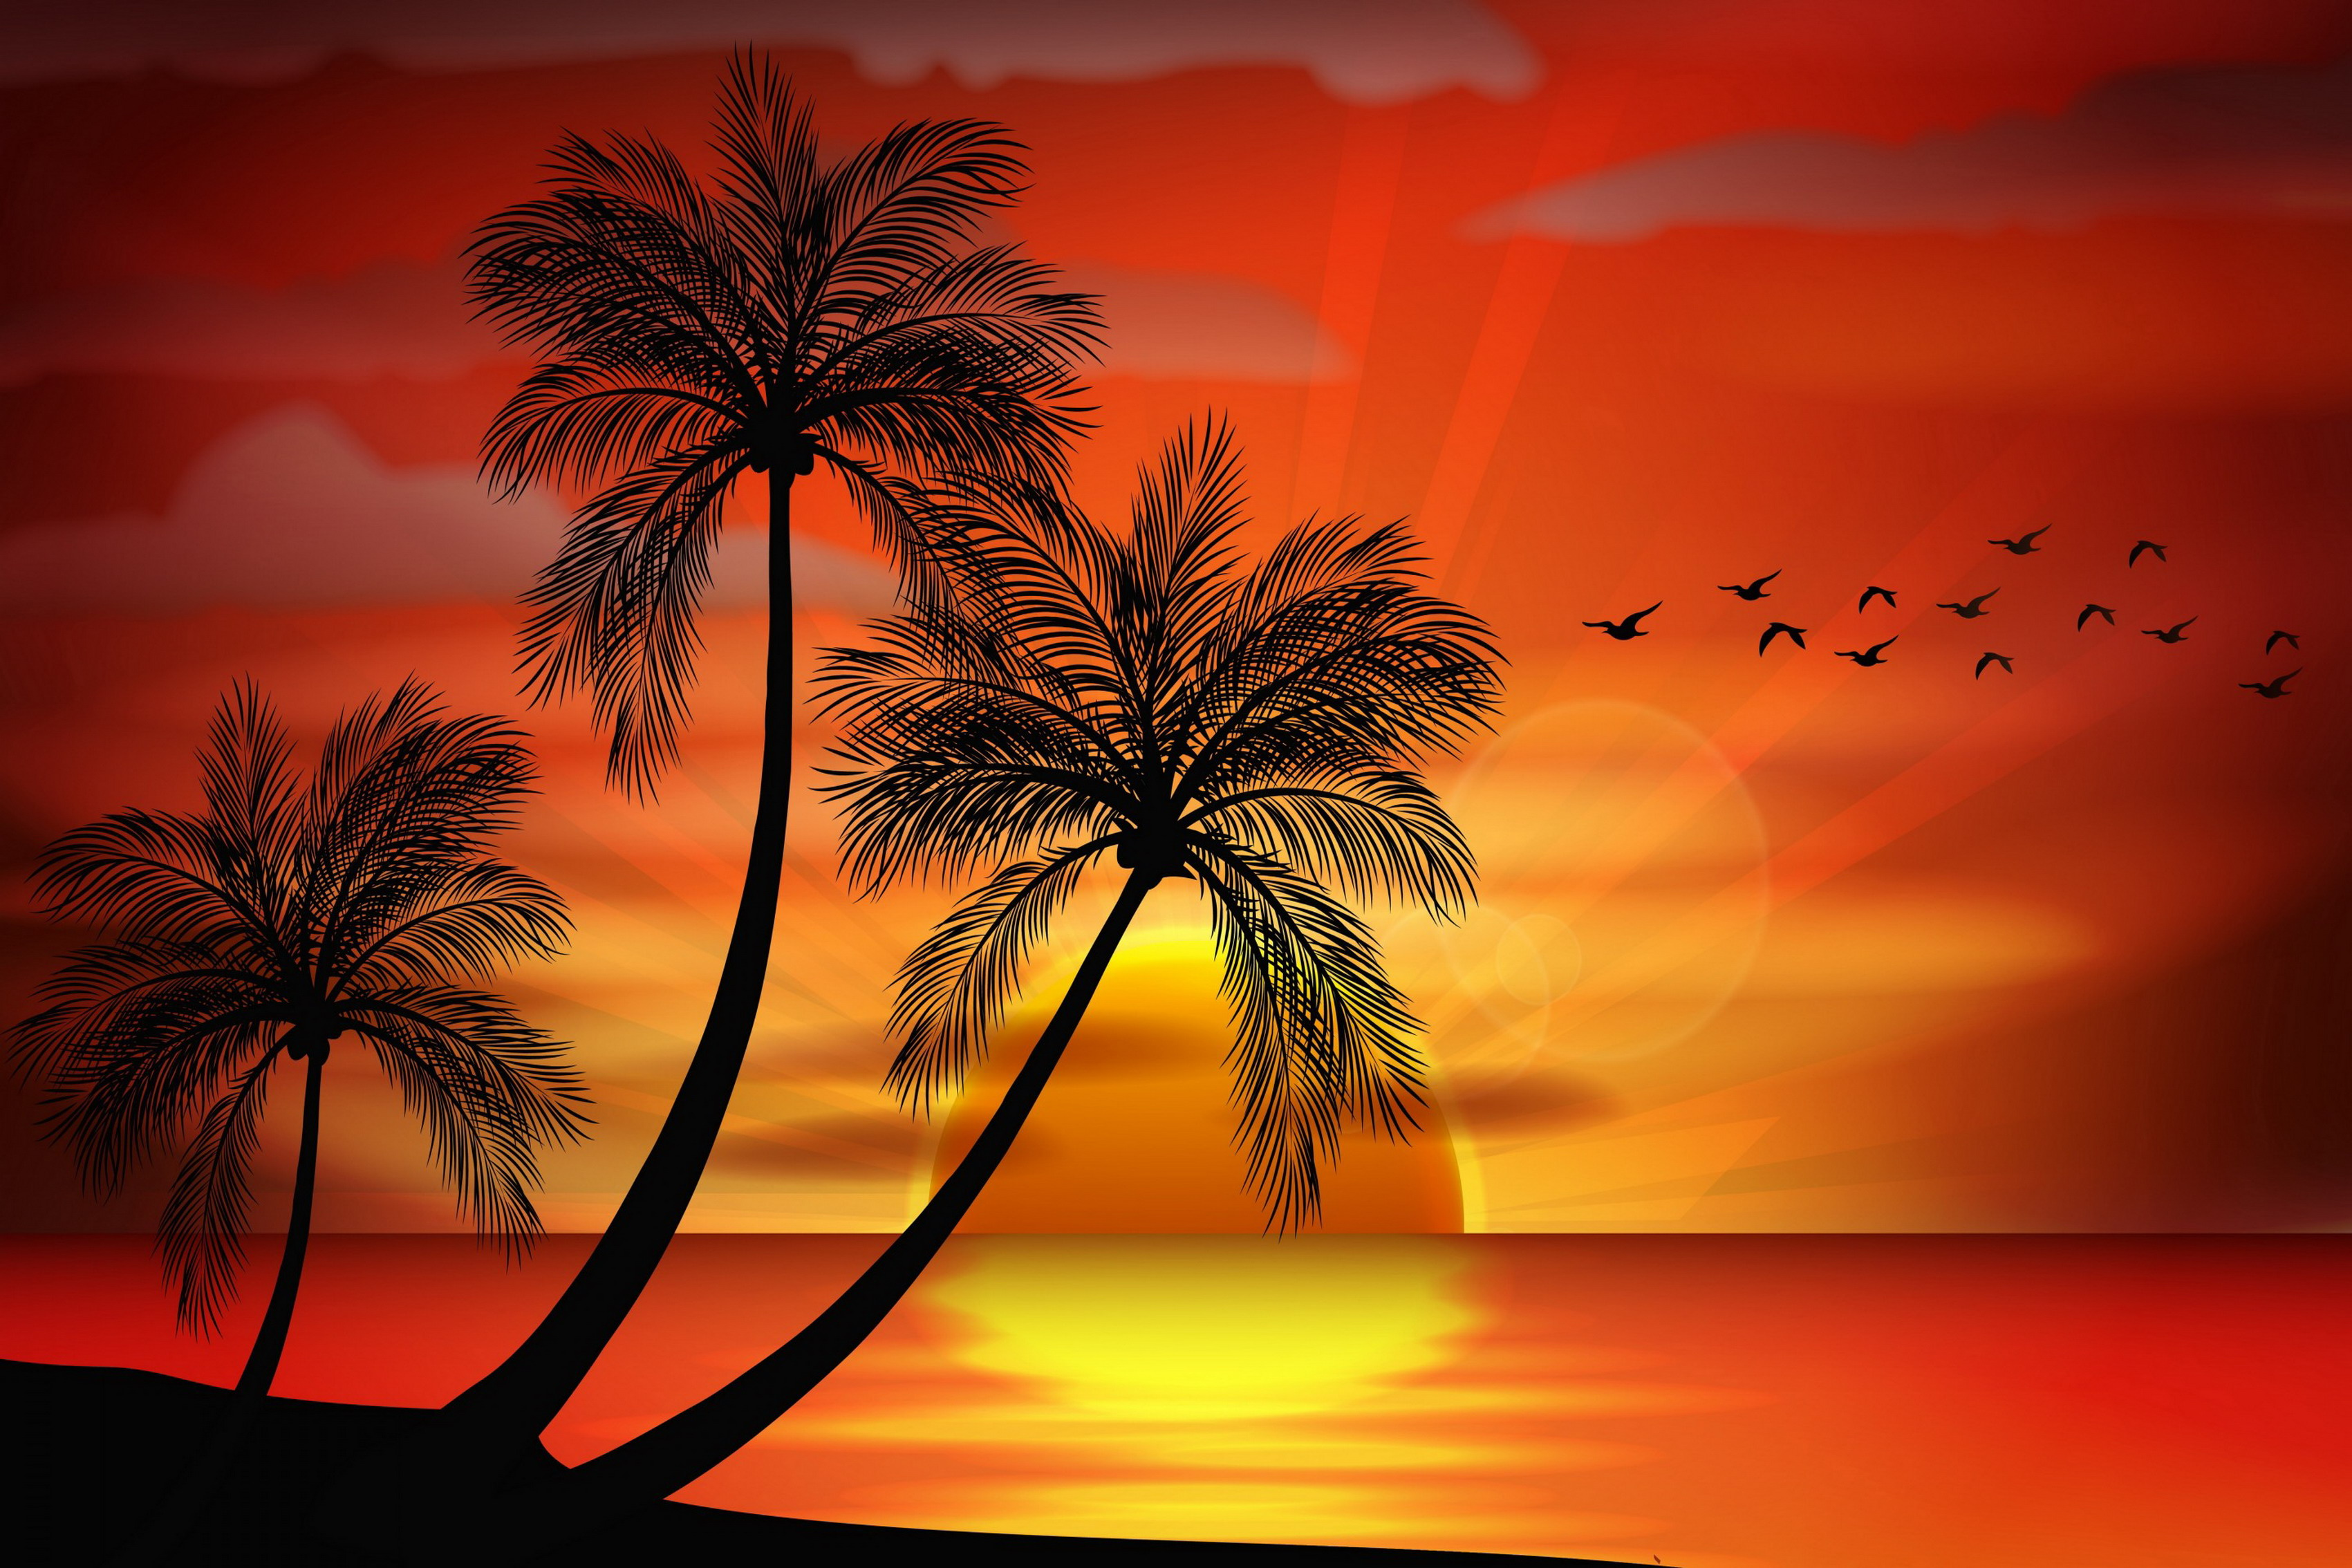 Home decoration sunset sea paradise tropical island palms island landscape silhouette 02 Silk Fabric Poster Print 431FJ